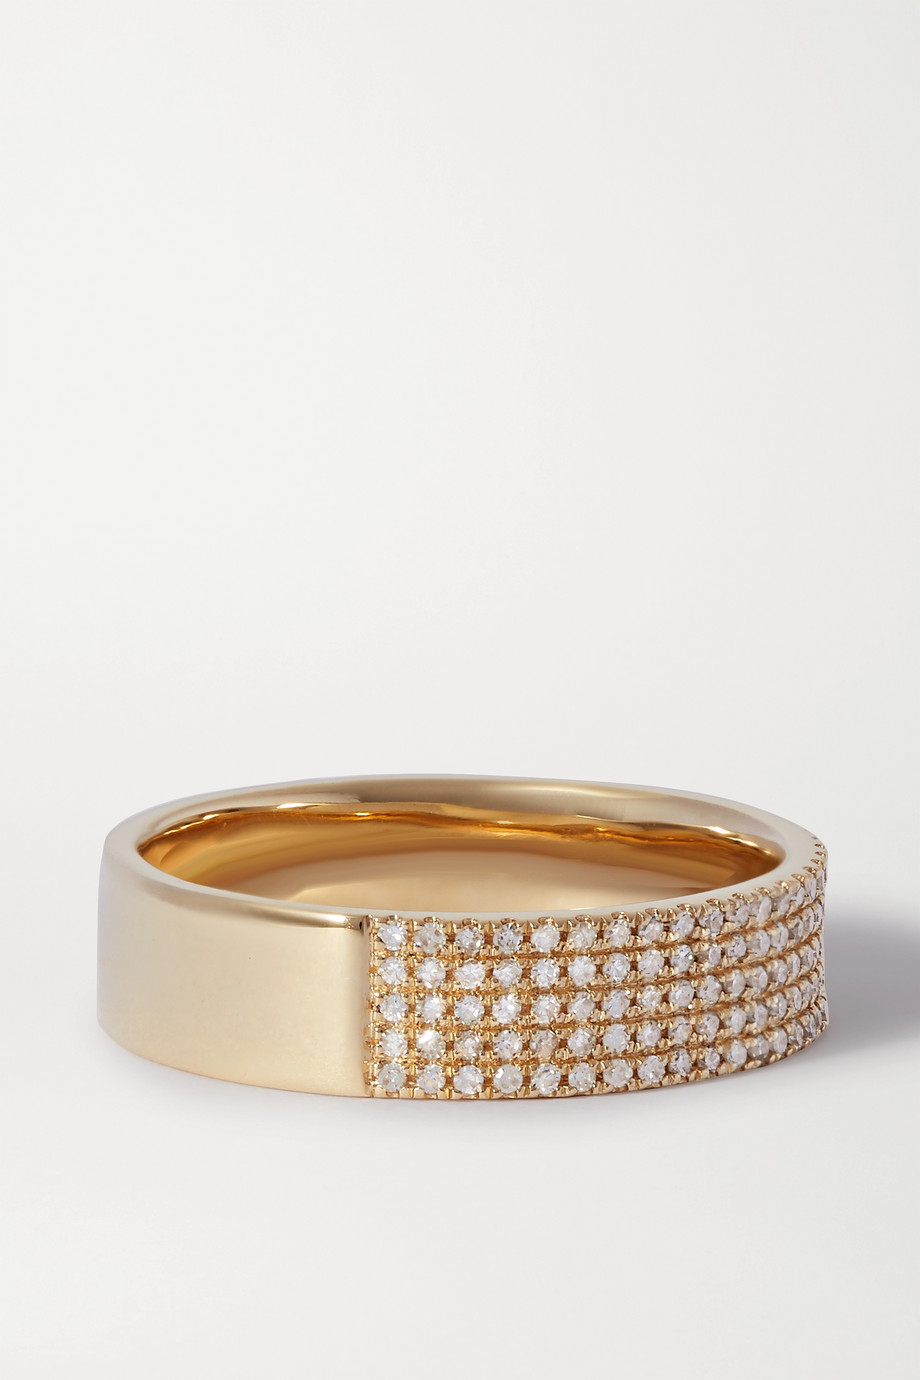 STONE AND STRAND Glamorous 10-karat gold diamond ring